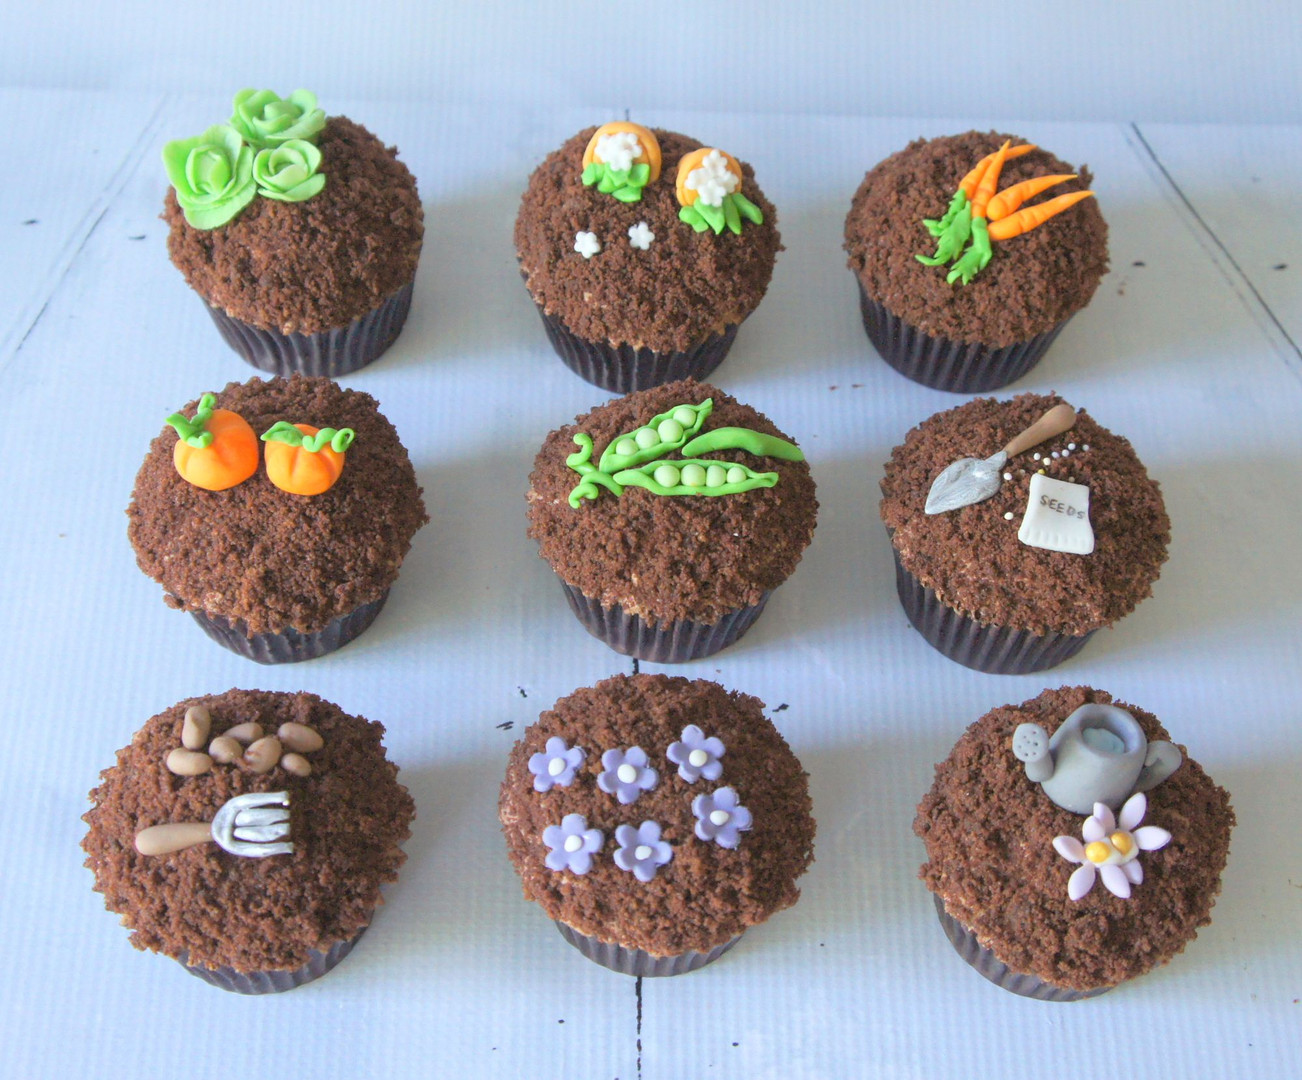 Soil Garden Patch Cupcakes.jpg